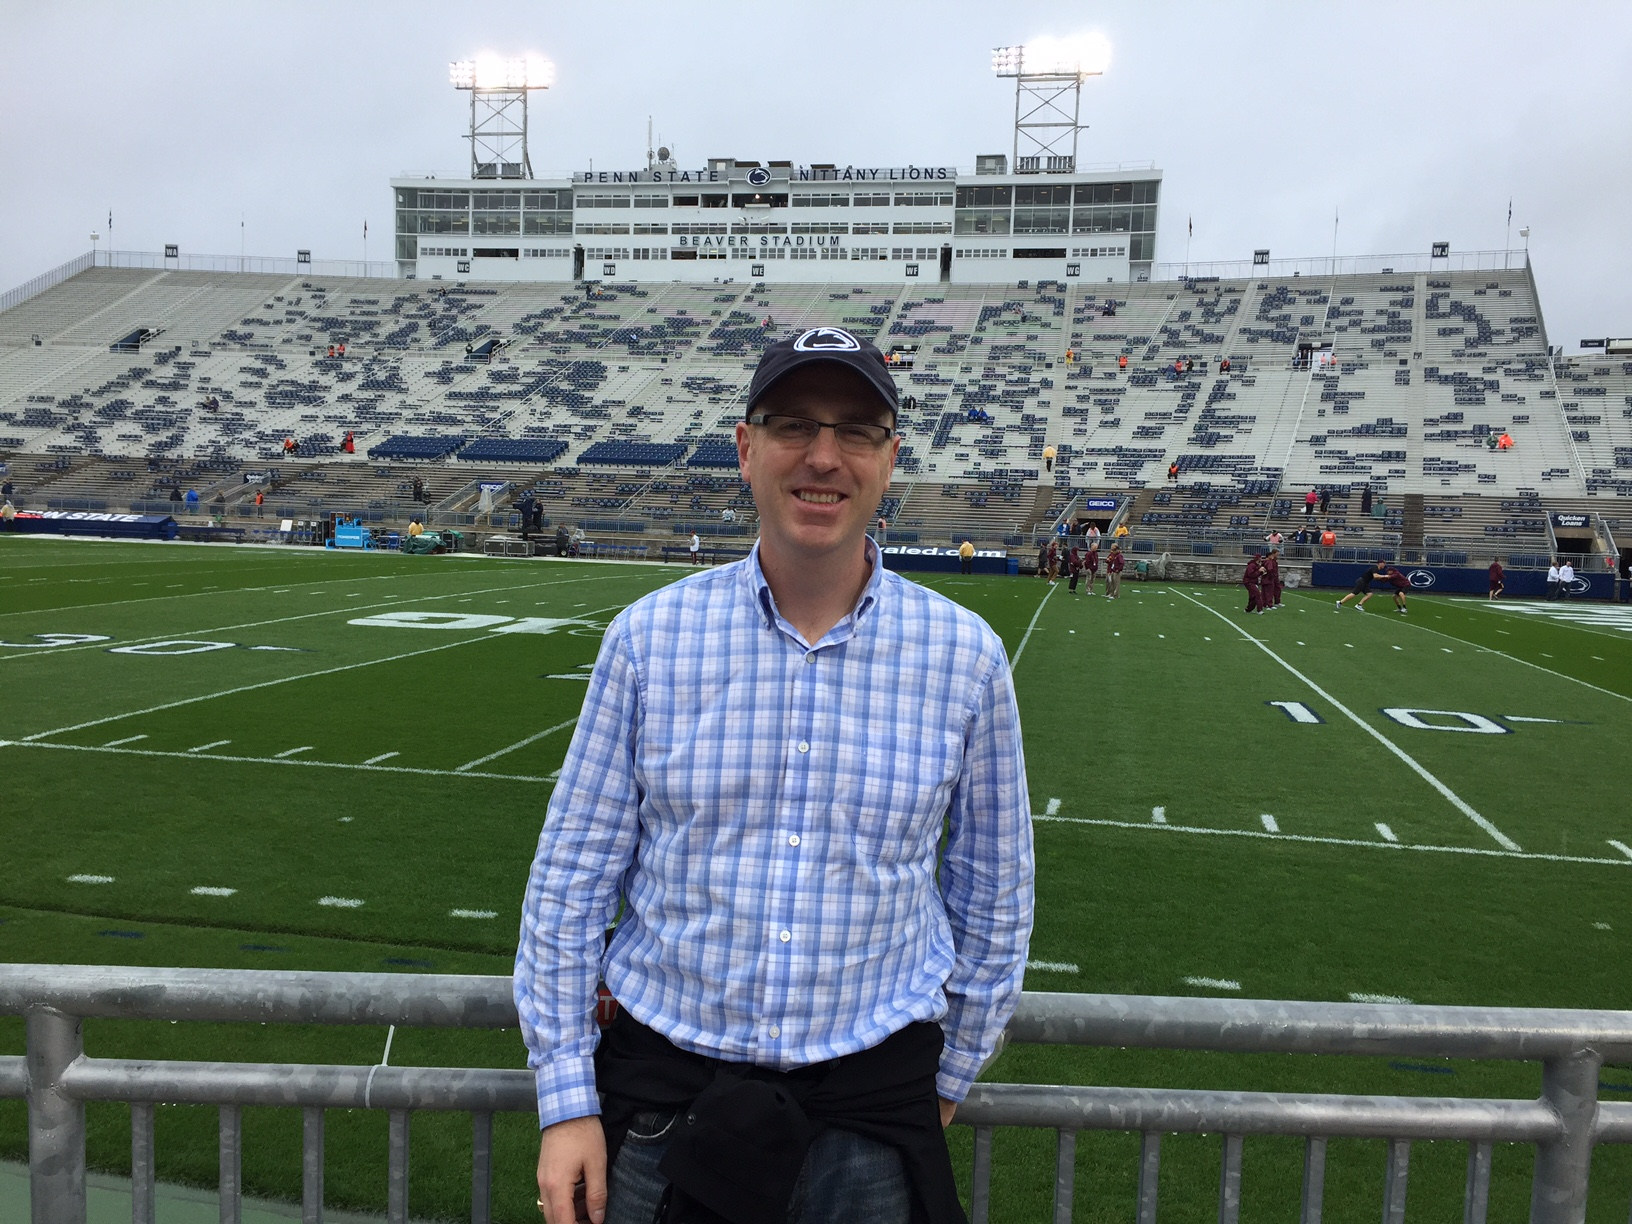 Chris Moore is a member of the Penn State World Campus Student Advisory Board.